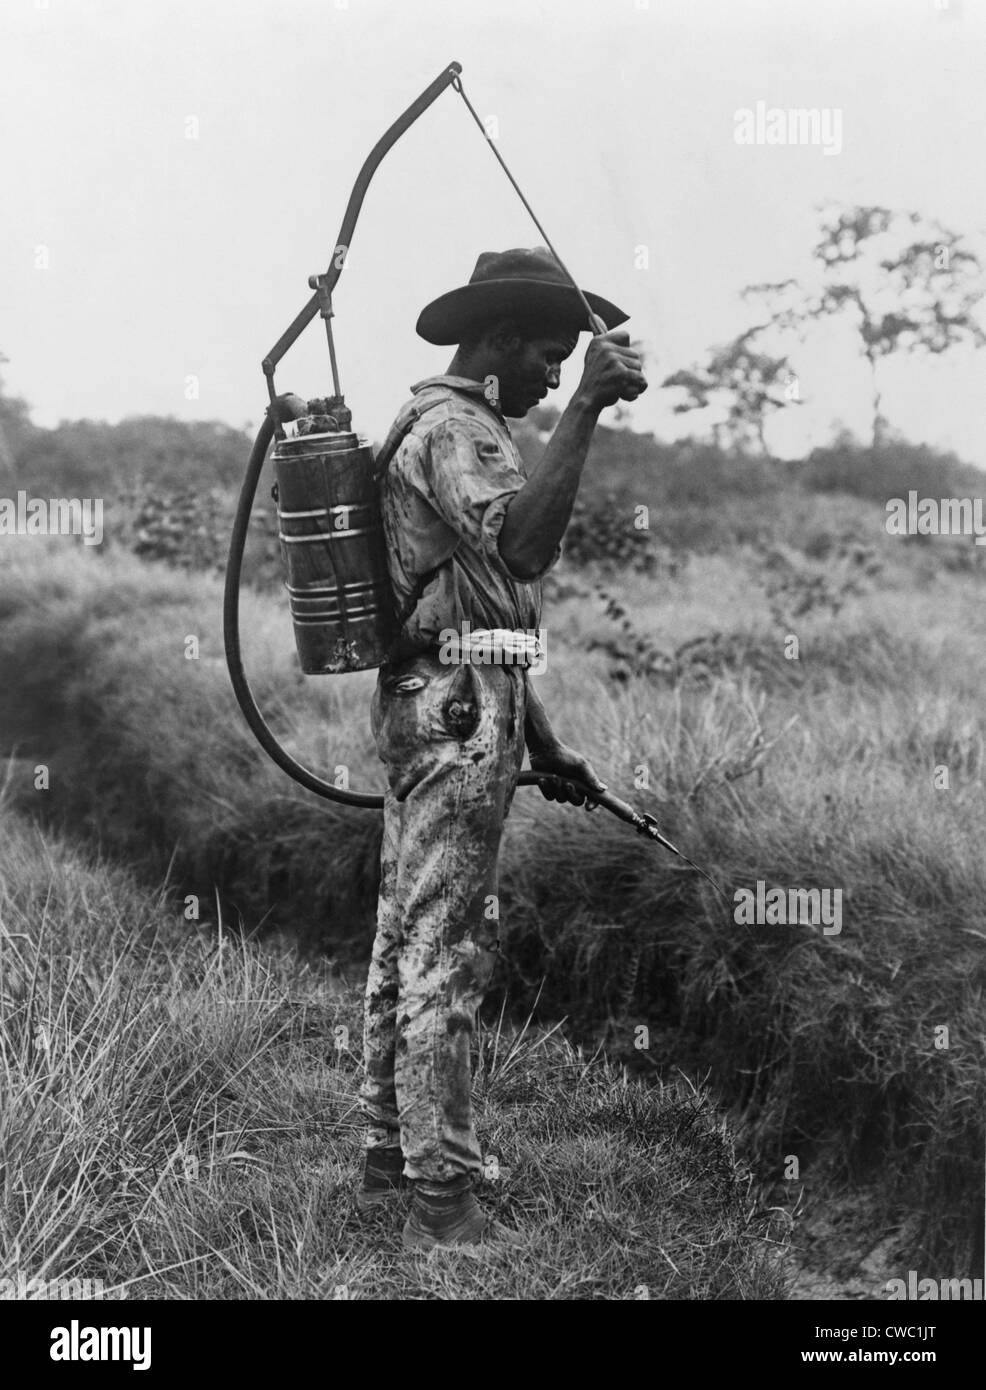 Panamanian man with a canister on his back spraying oil on breeding places of mosquitoes in Panama. Mosquito control - Stock Image